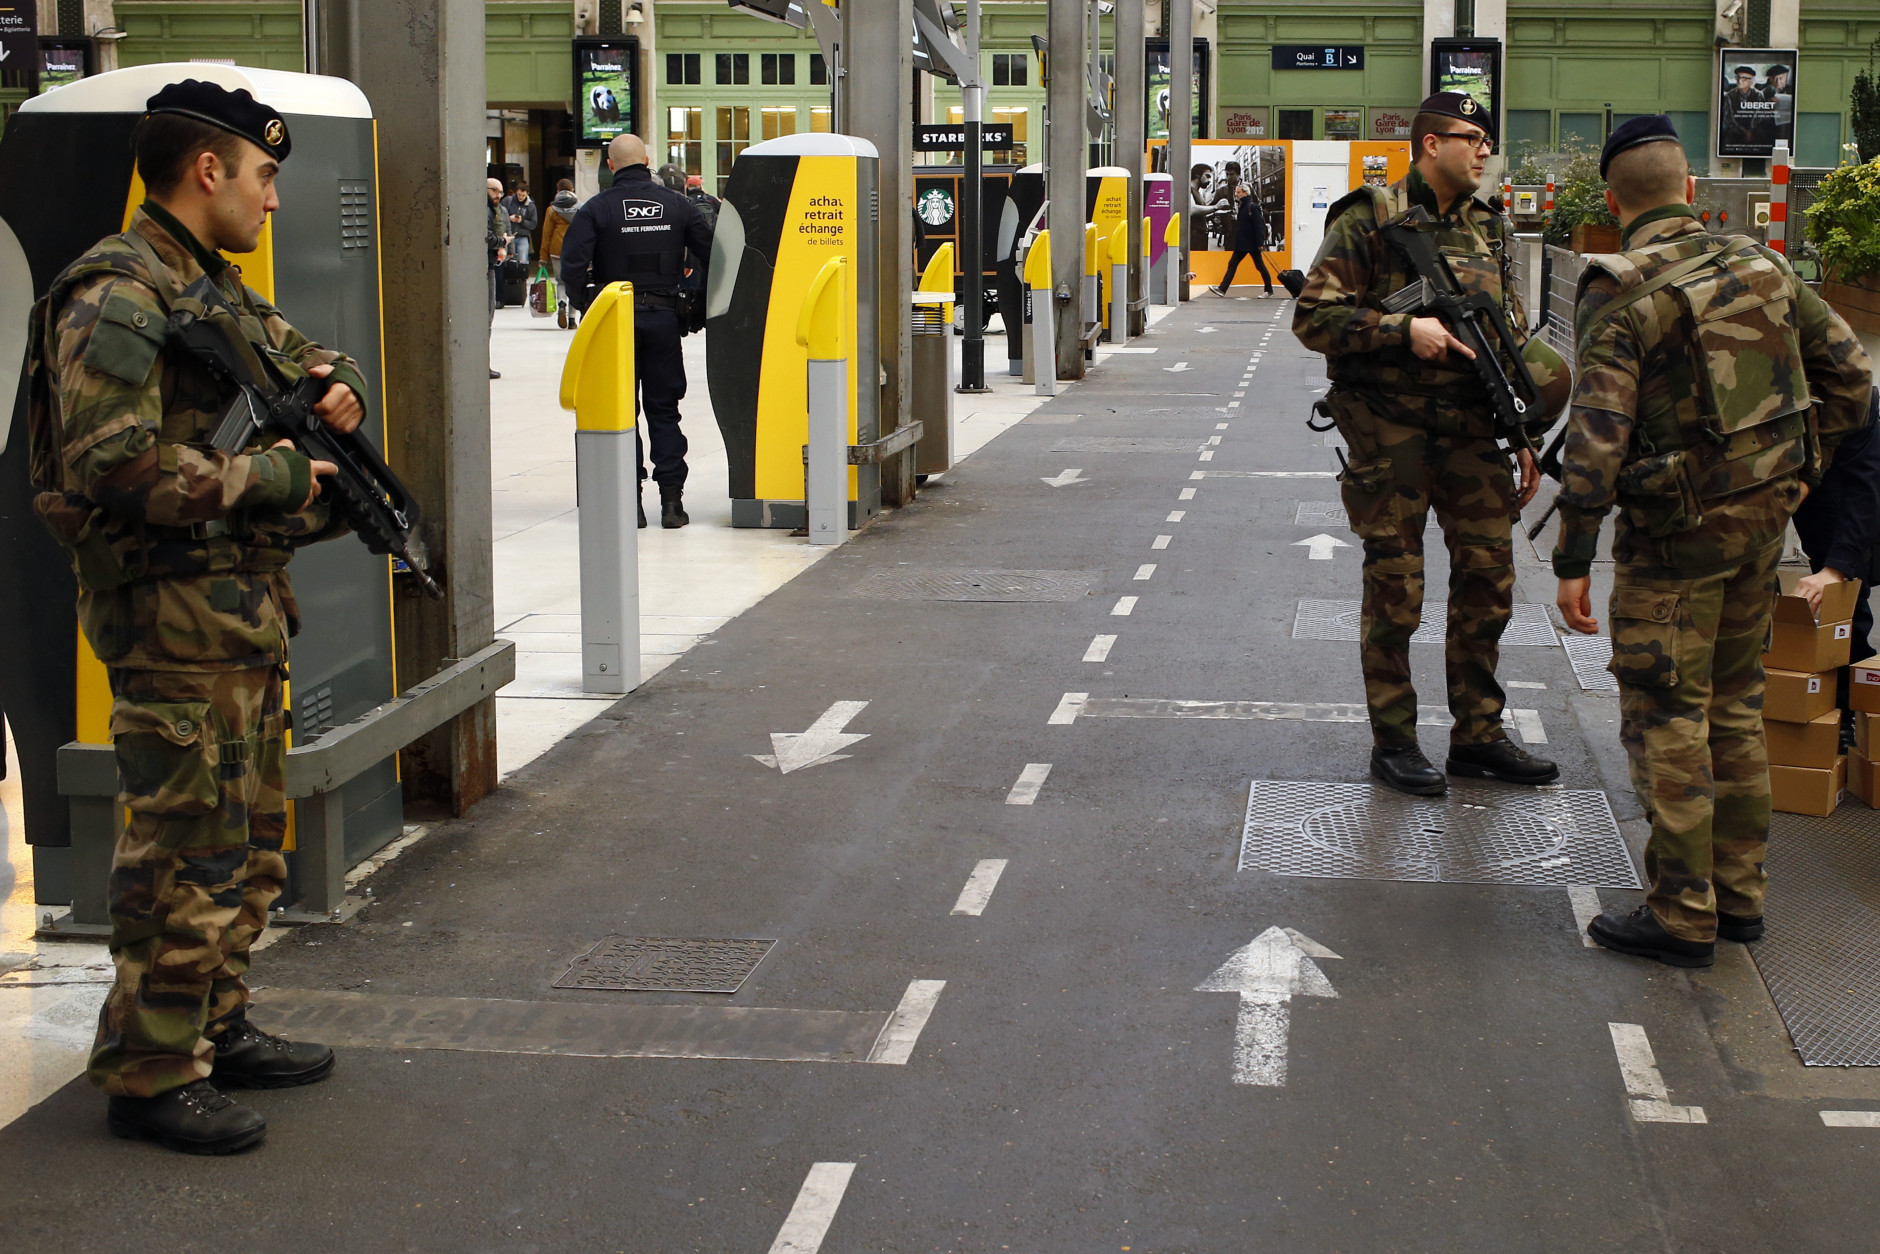 French soldiers patrol in Gare De Lyon railway station in Paris, France, Tuesday, March 22, 2016. Authorities are tightening security at airports and on the streets of European cities after attacks on the Brussels airport and subways system that killed at least one person and injured many others. (AP Photo/Francois Mori)